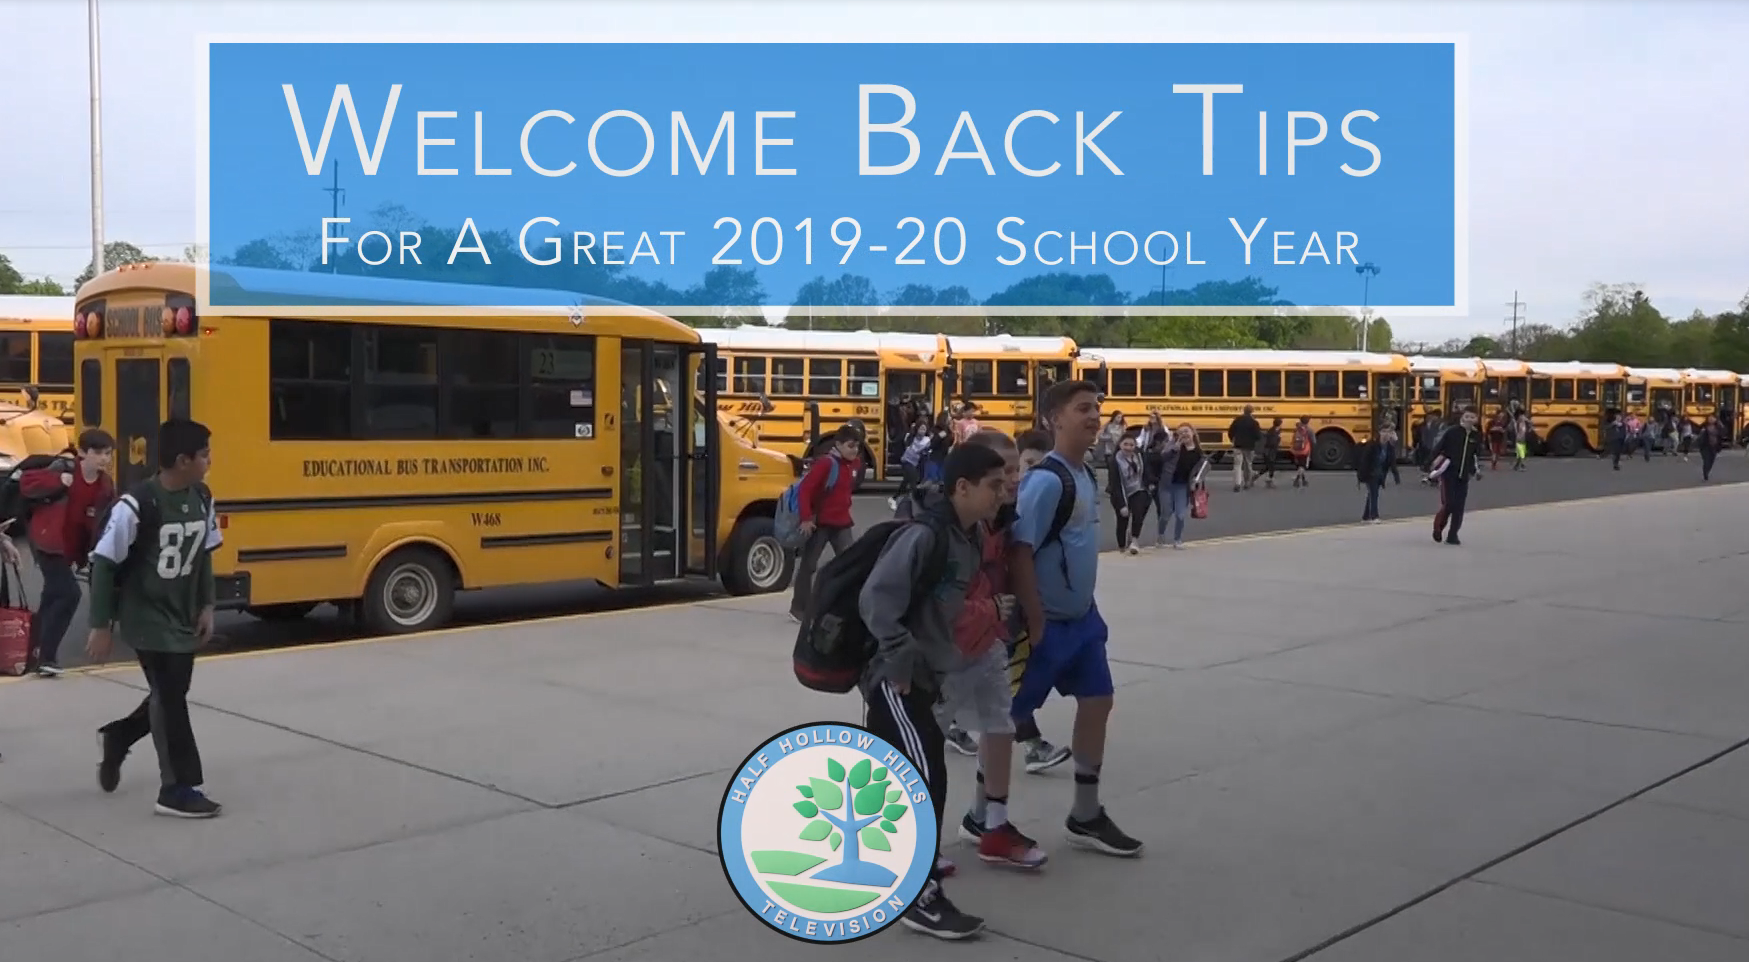 Welcome Back Tips: From Students, For Students